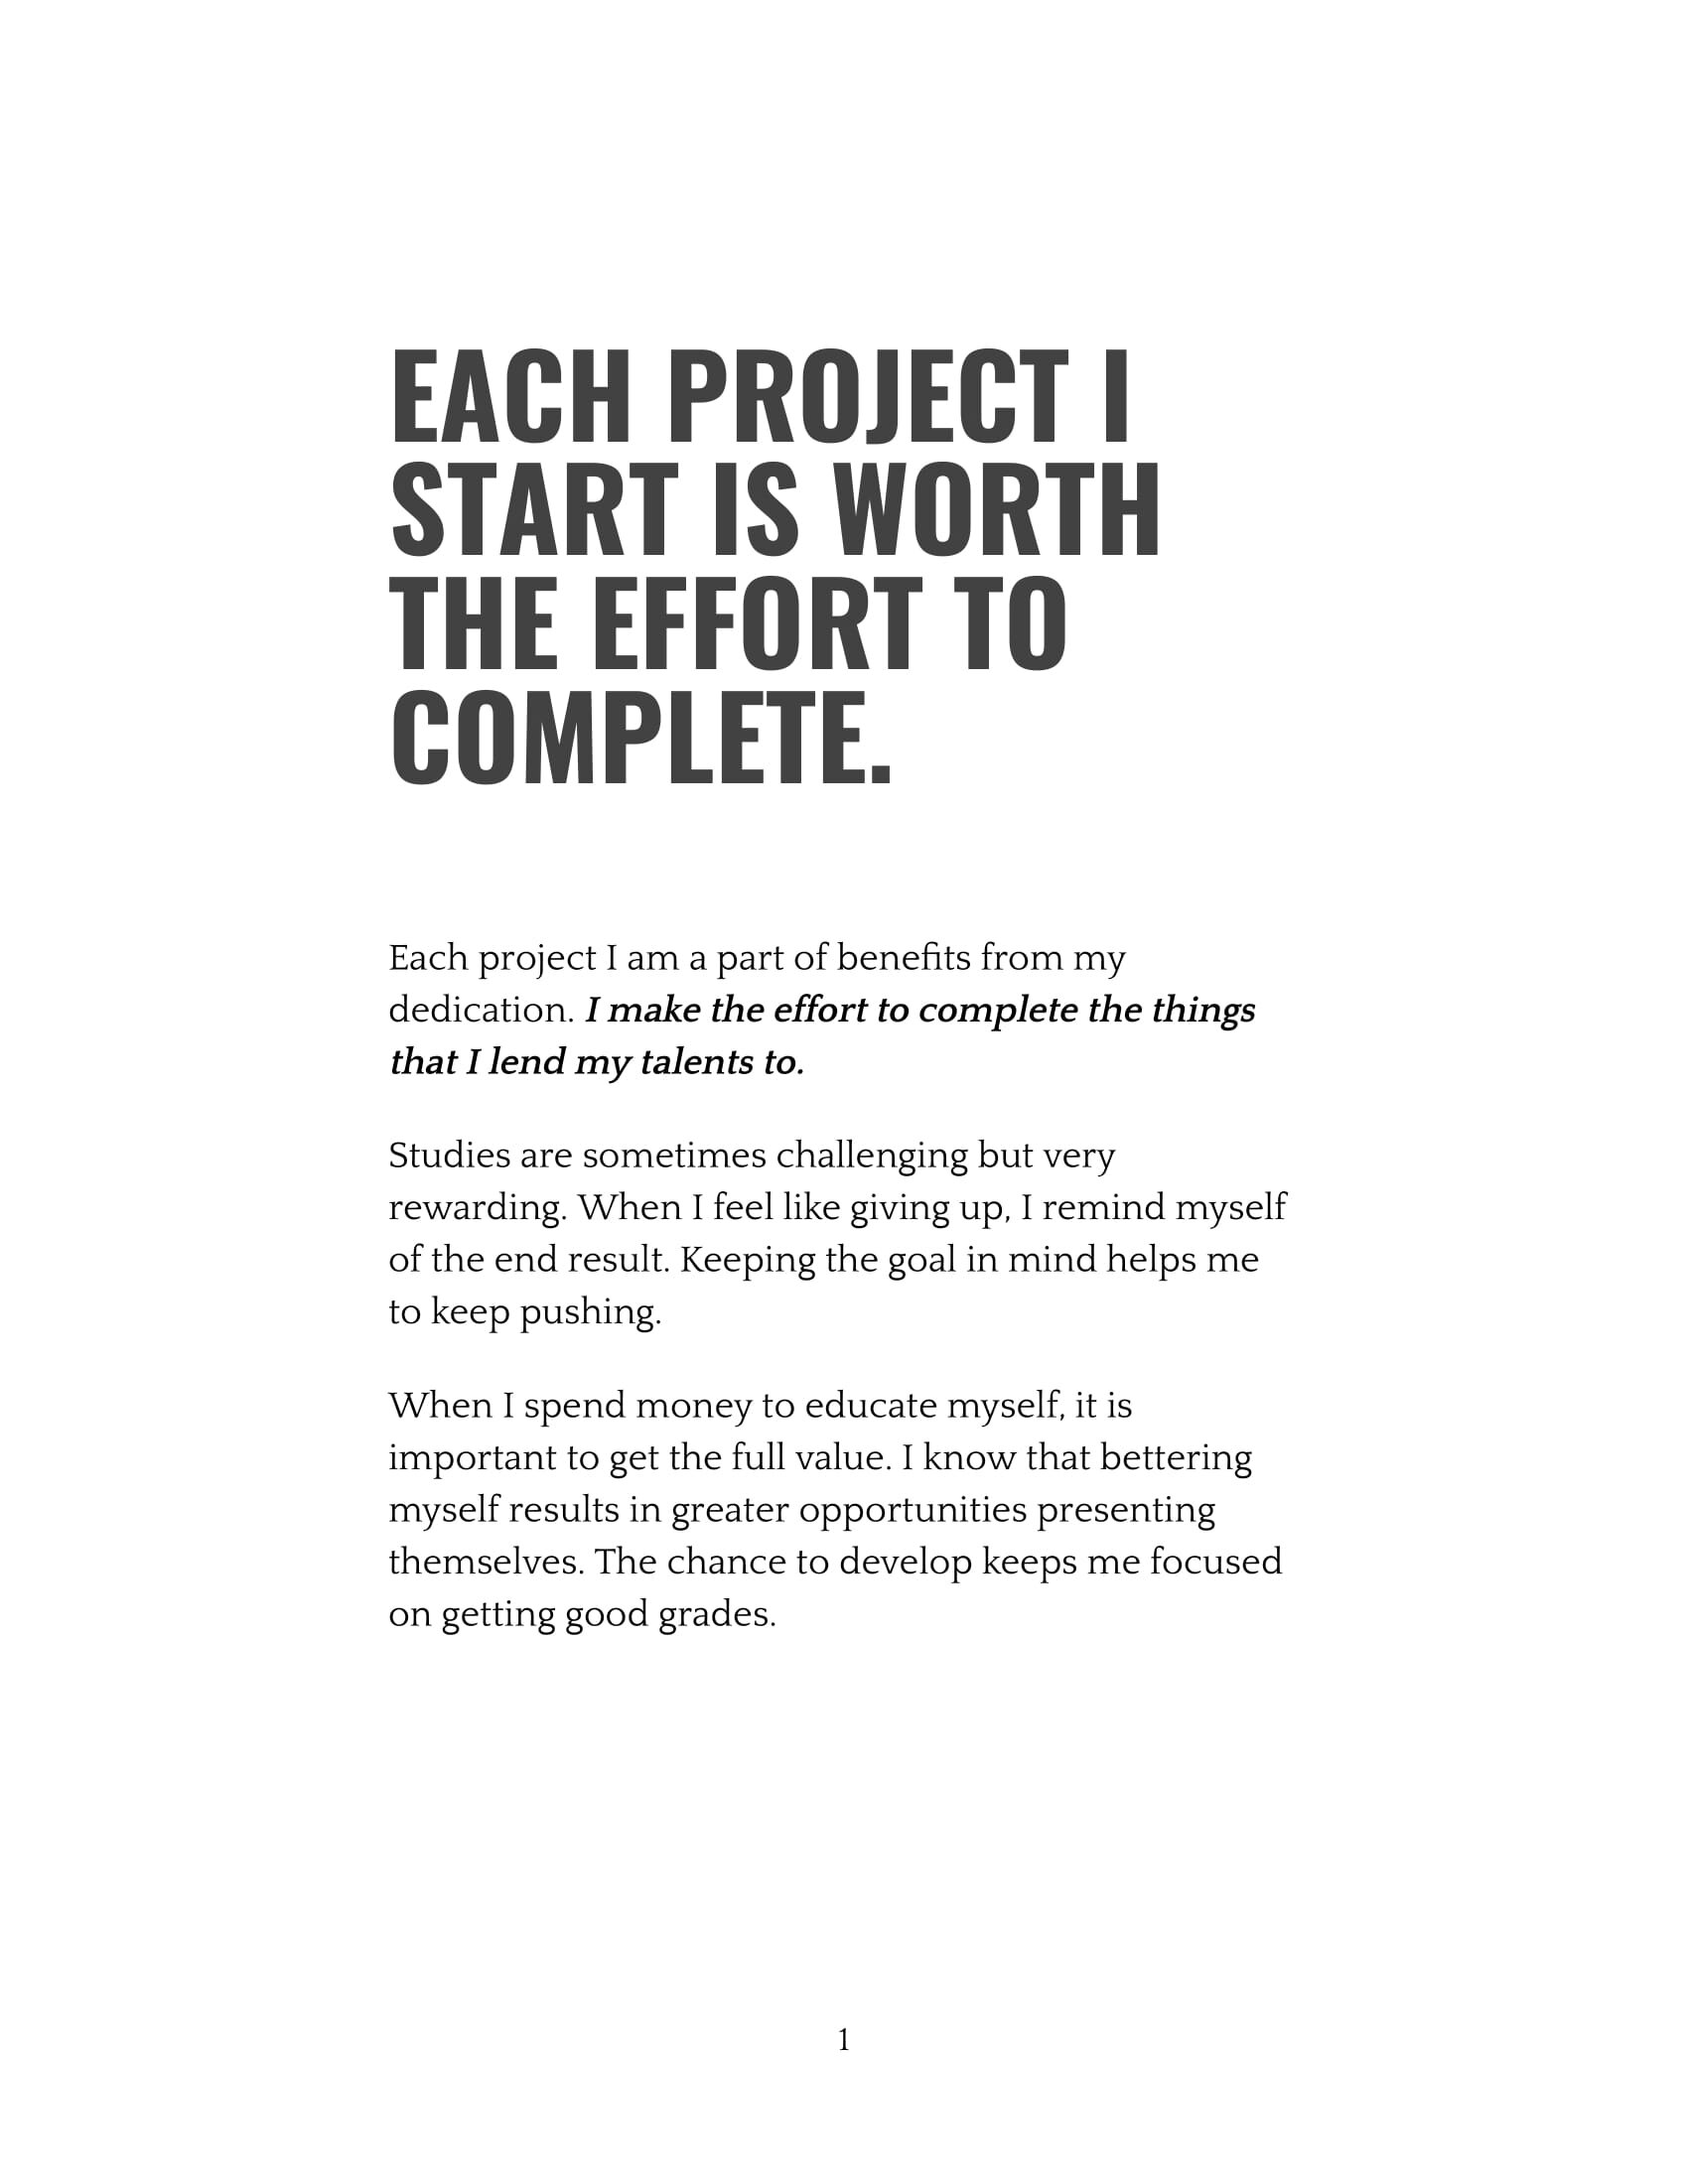 Each Project I Start Is Worth The Effort To Complete-1.jpg